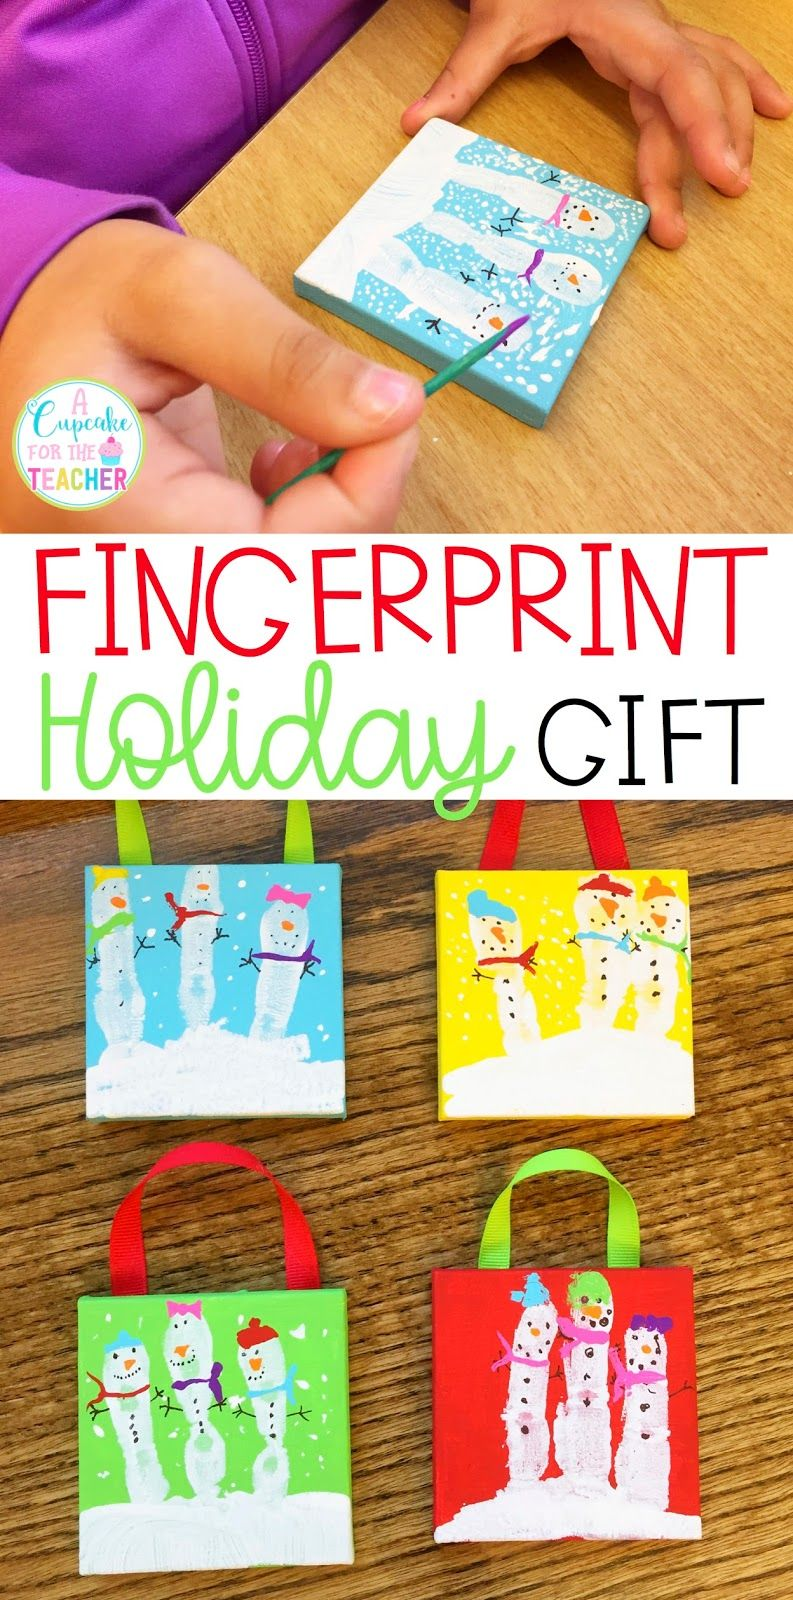 It S The Most Wonderful Time Of The Year If You Re Starting To Think About Holiday Gift Ideas For Your Students Families I Ve Got You Christmas Pinte